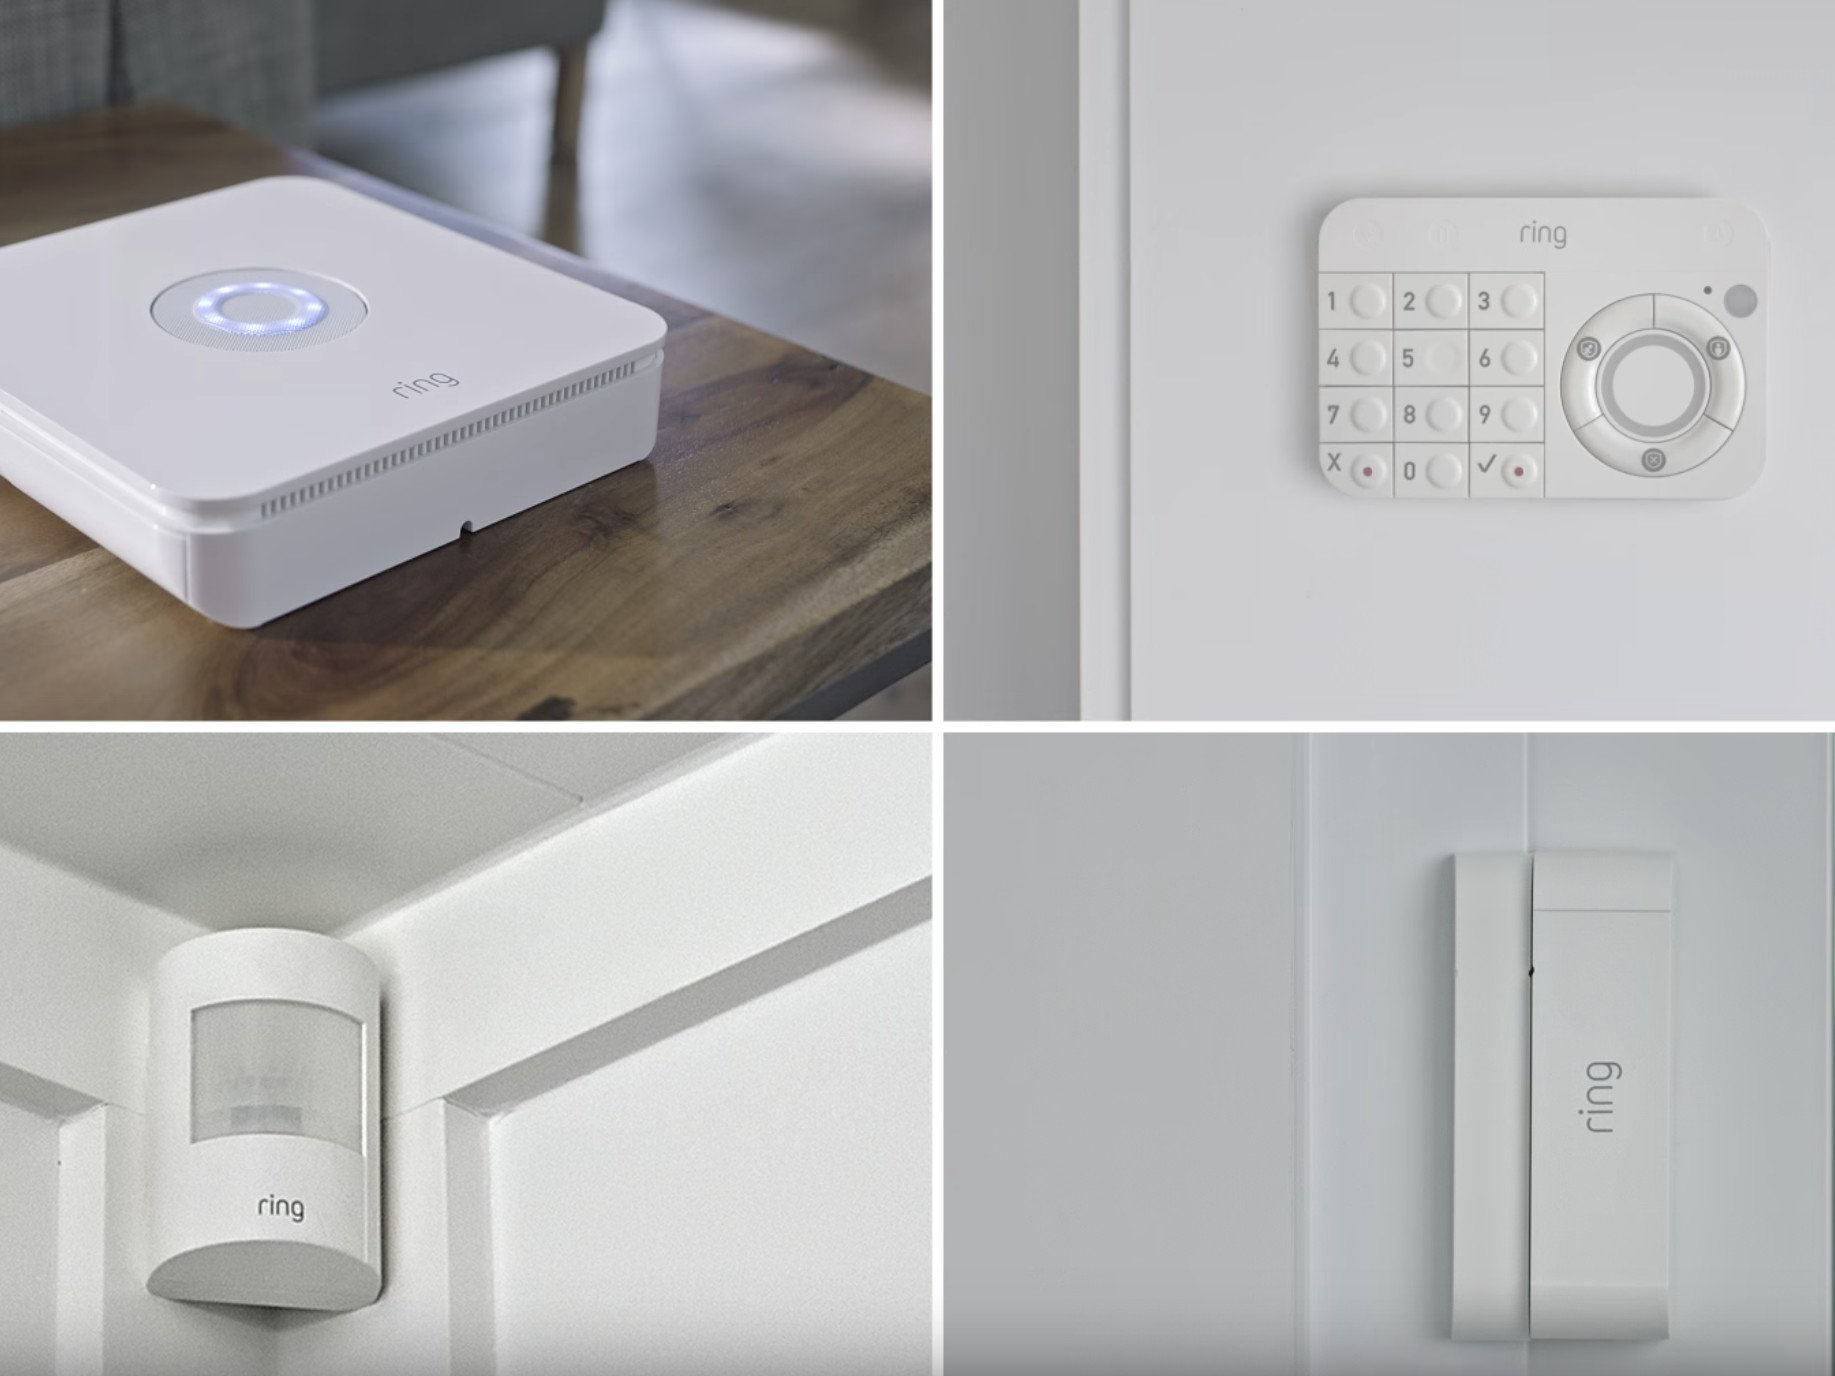 Diy Home Security Monitoring